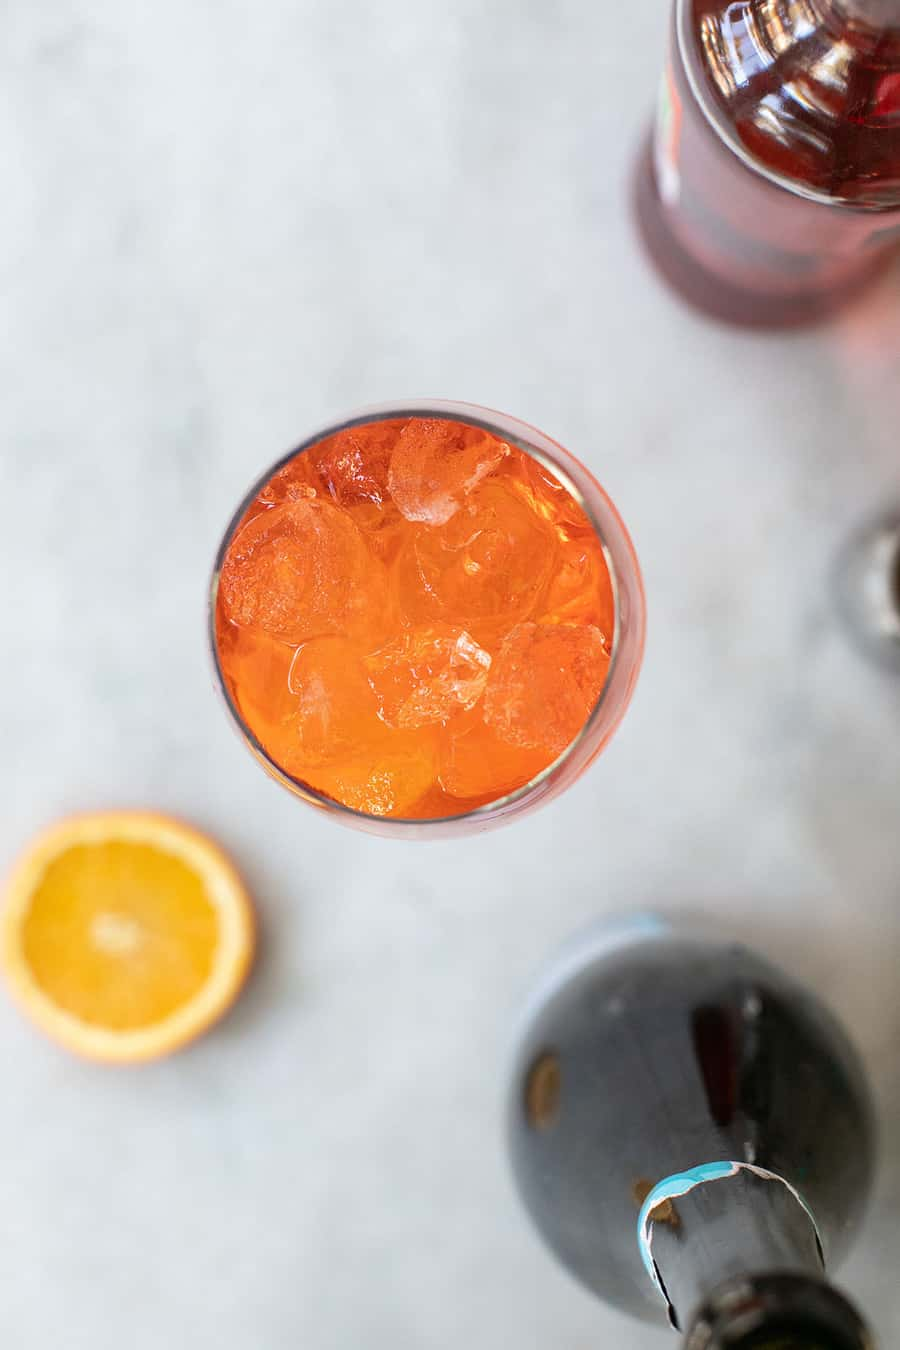 Cocktail made with Aperol, Prosecco and club soda